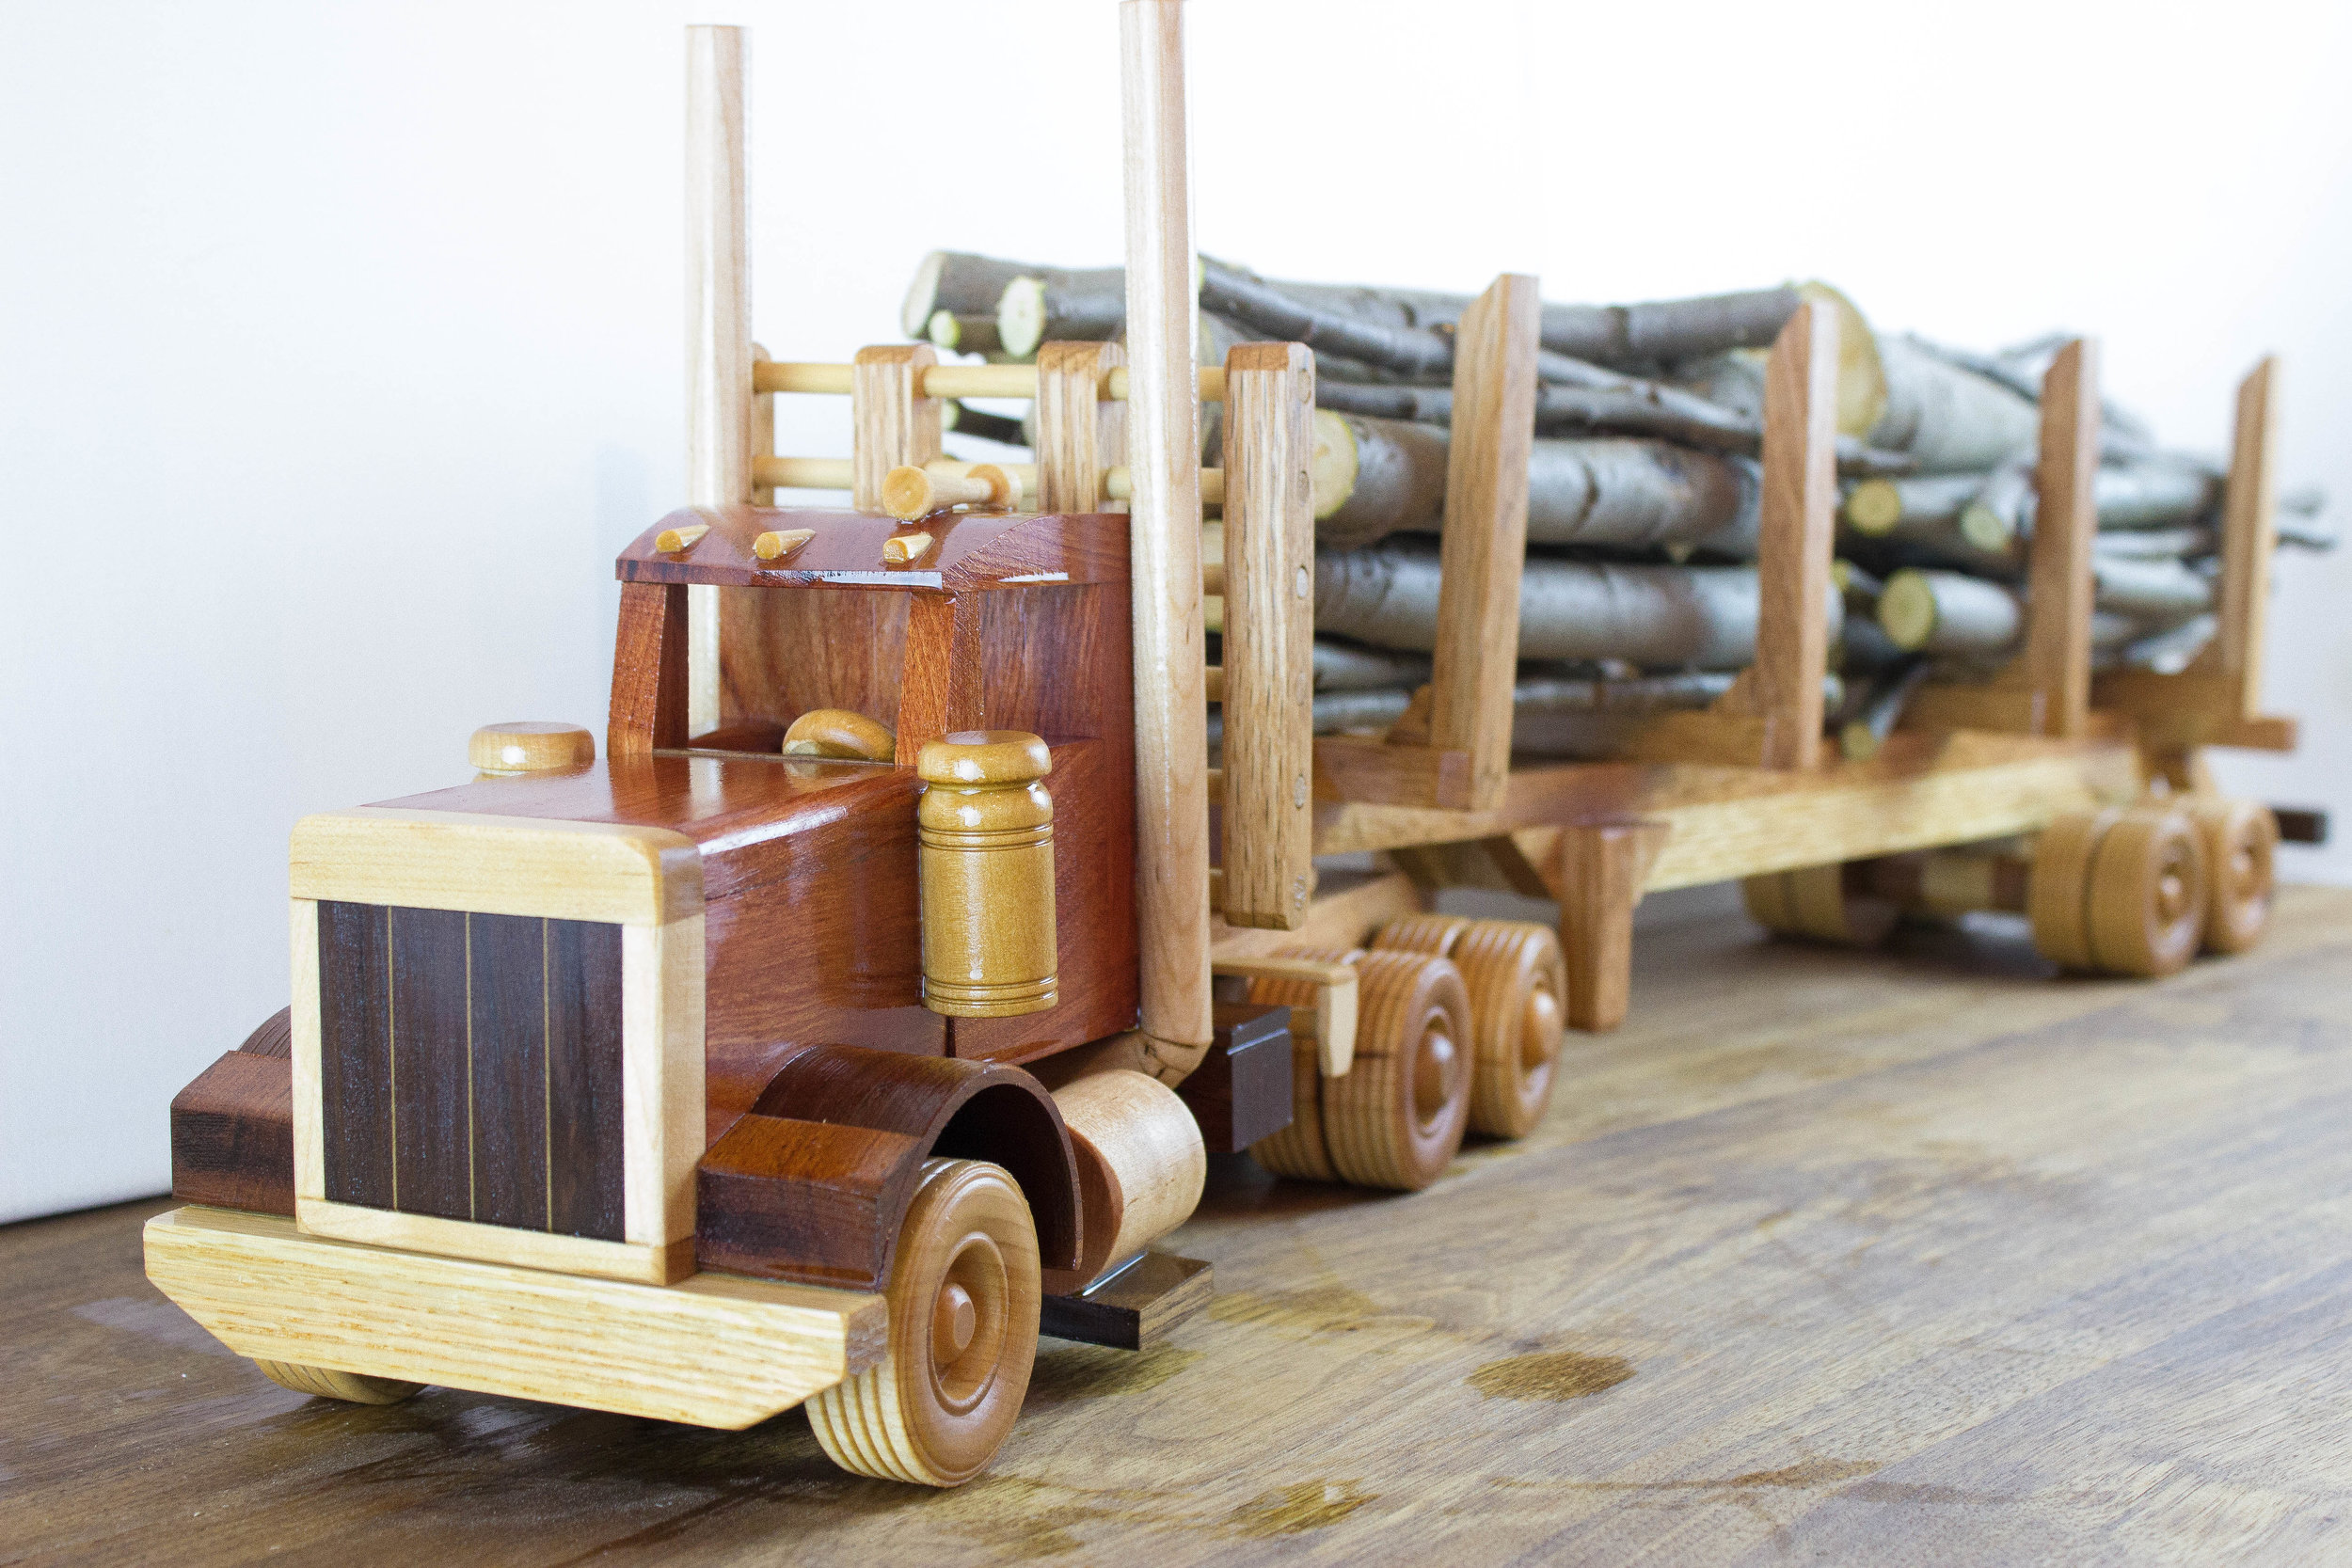 Logging truck toy, all natural wood.